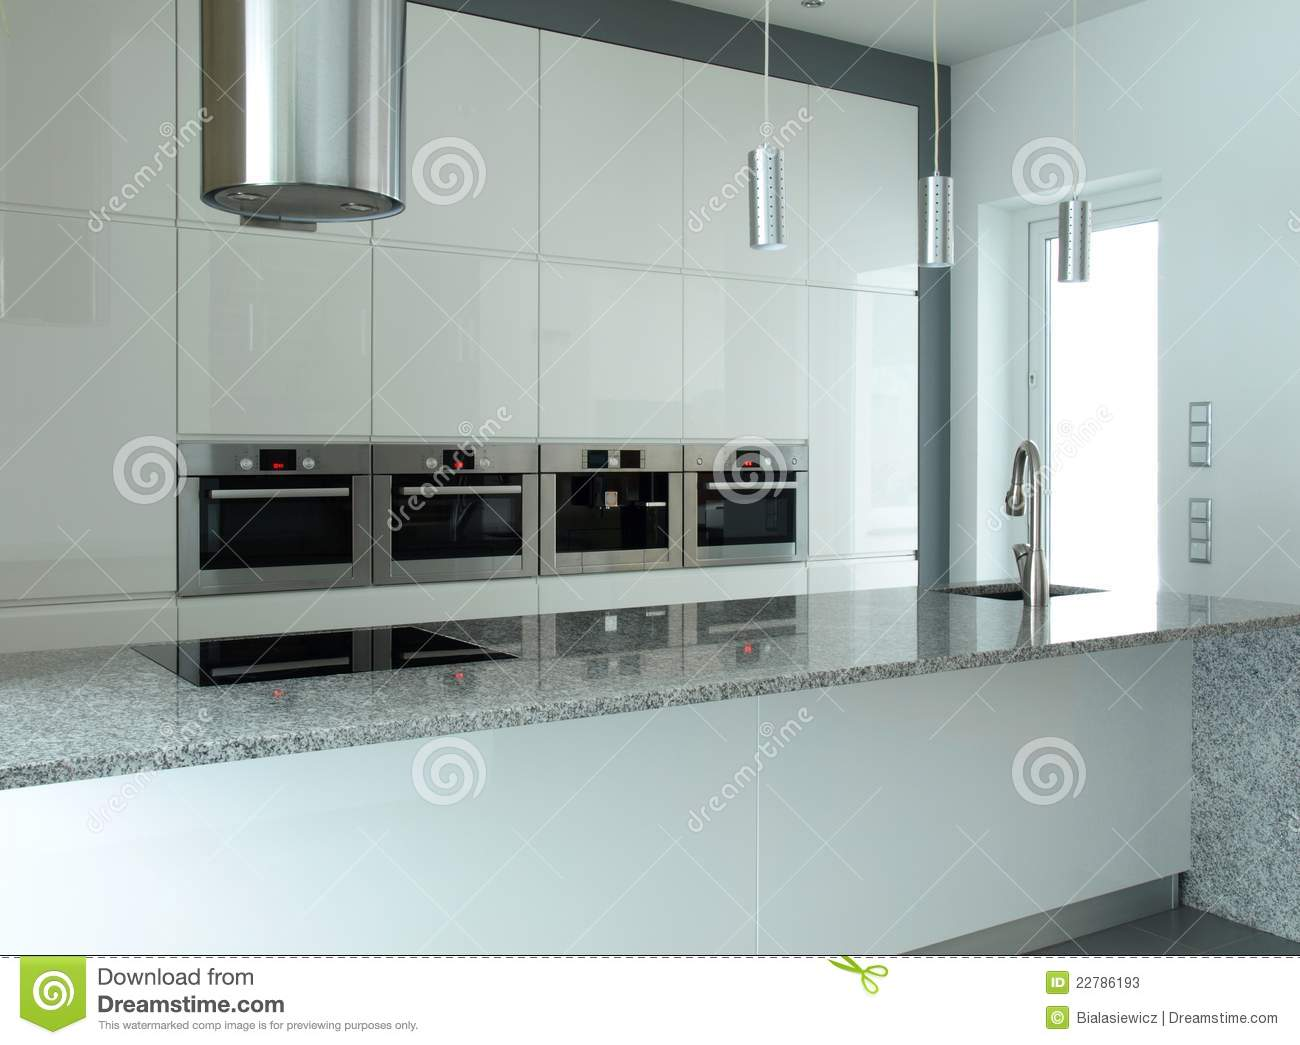 White Kitchen With Built in Appliances Stock Photos